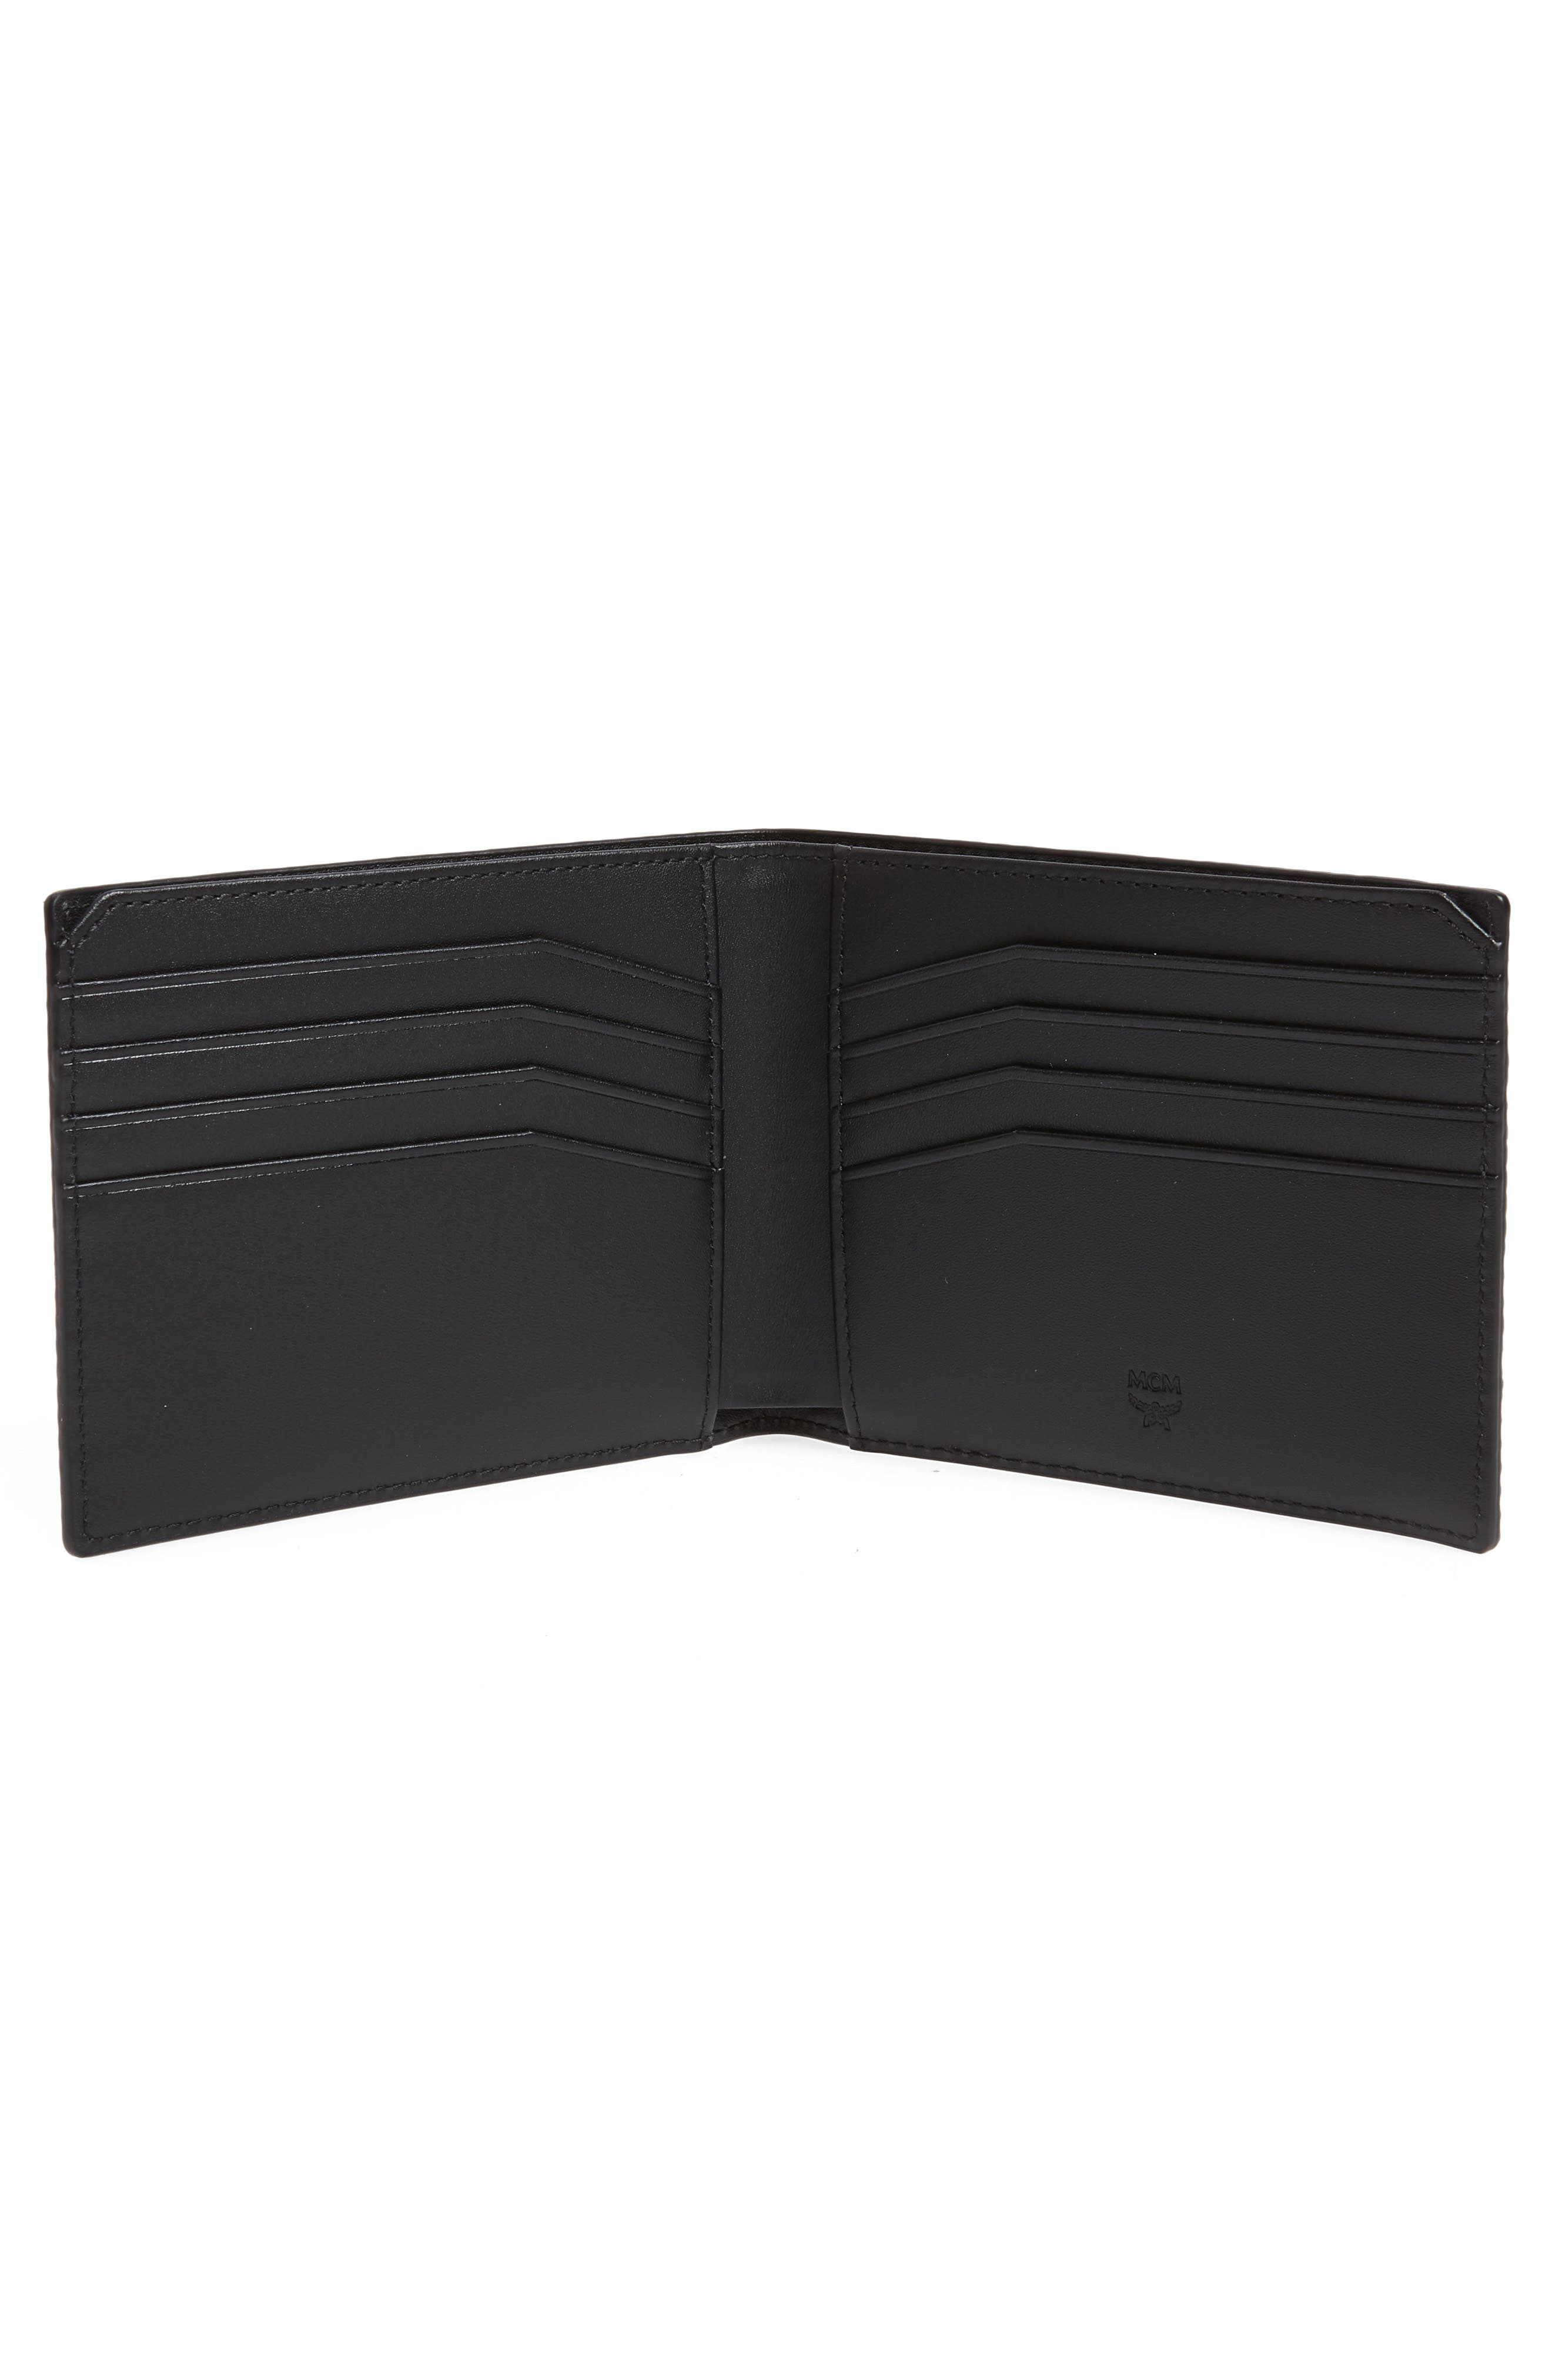 Coburg Lion Patent Leather Bifold Card Case,                             Alternate thumbnail 2, color,                             BLACK